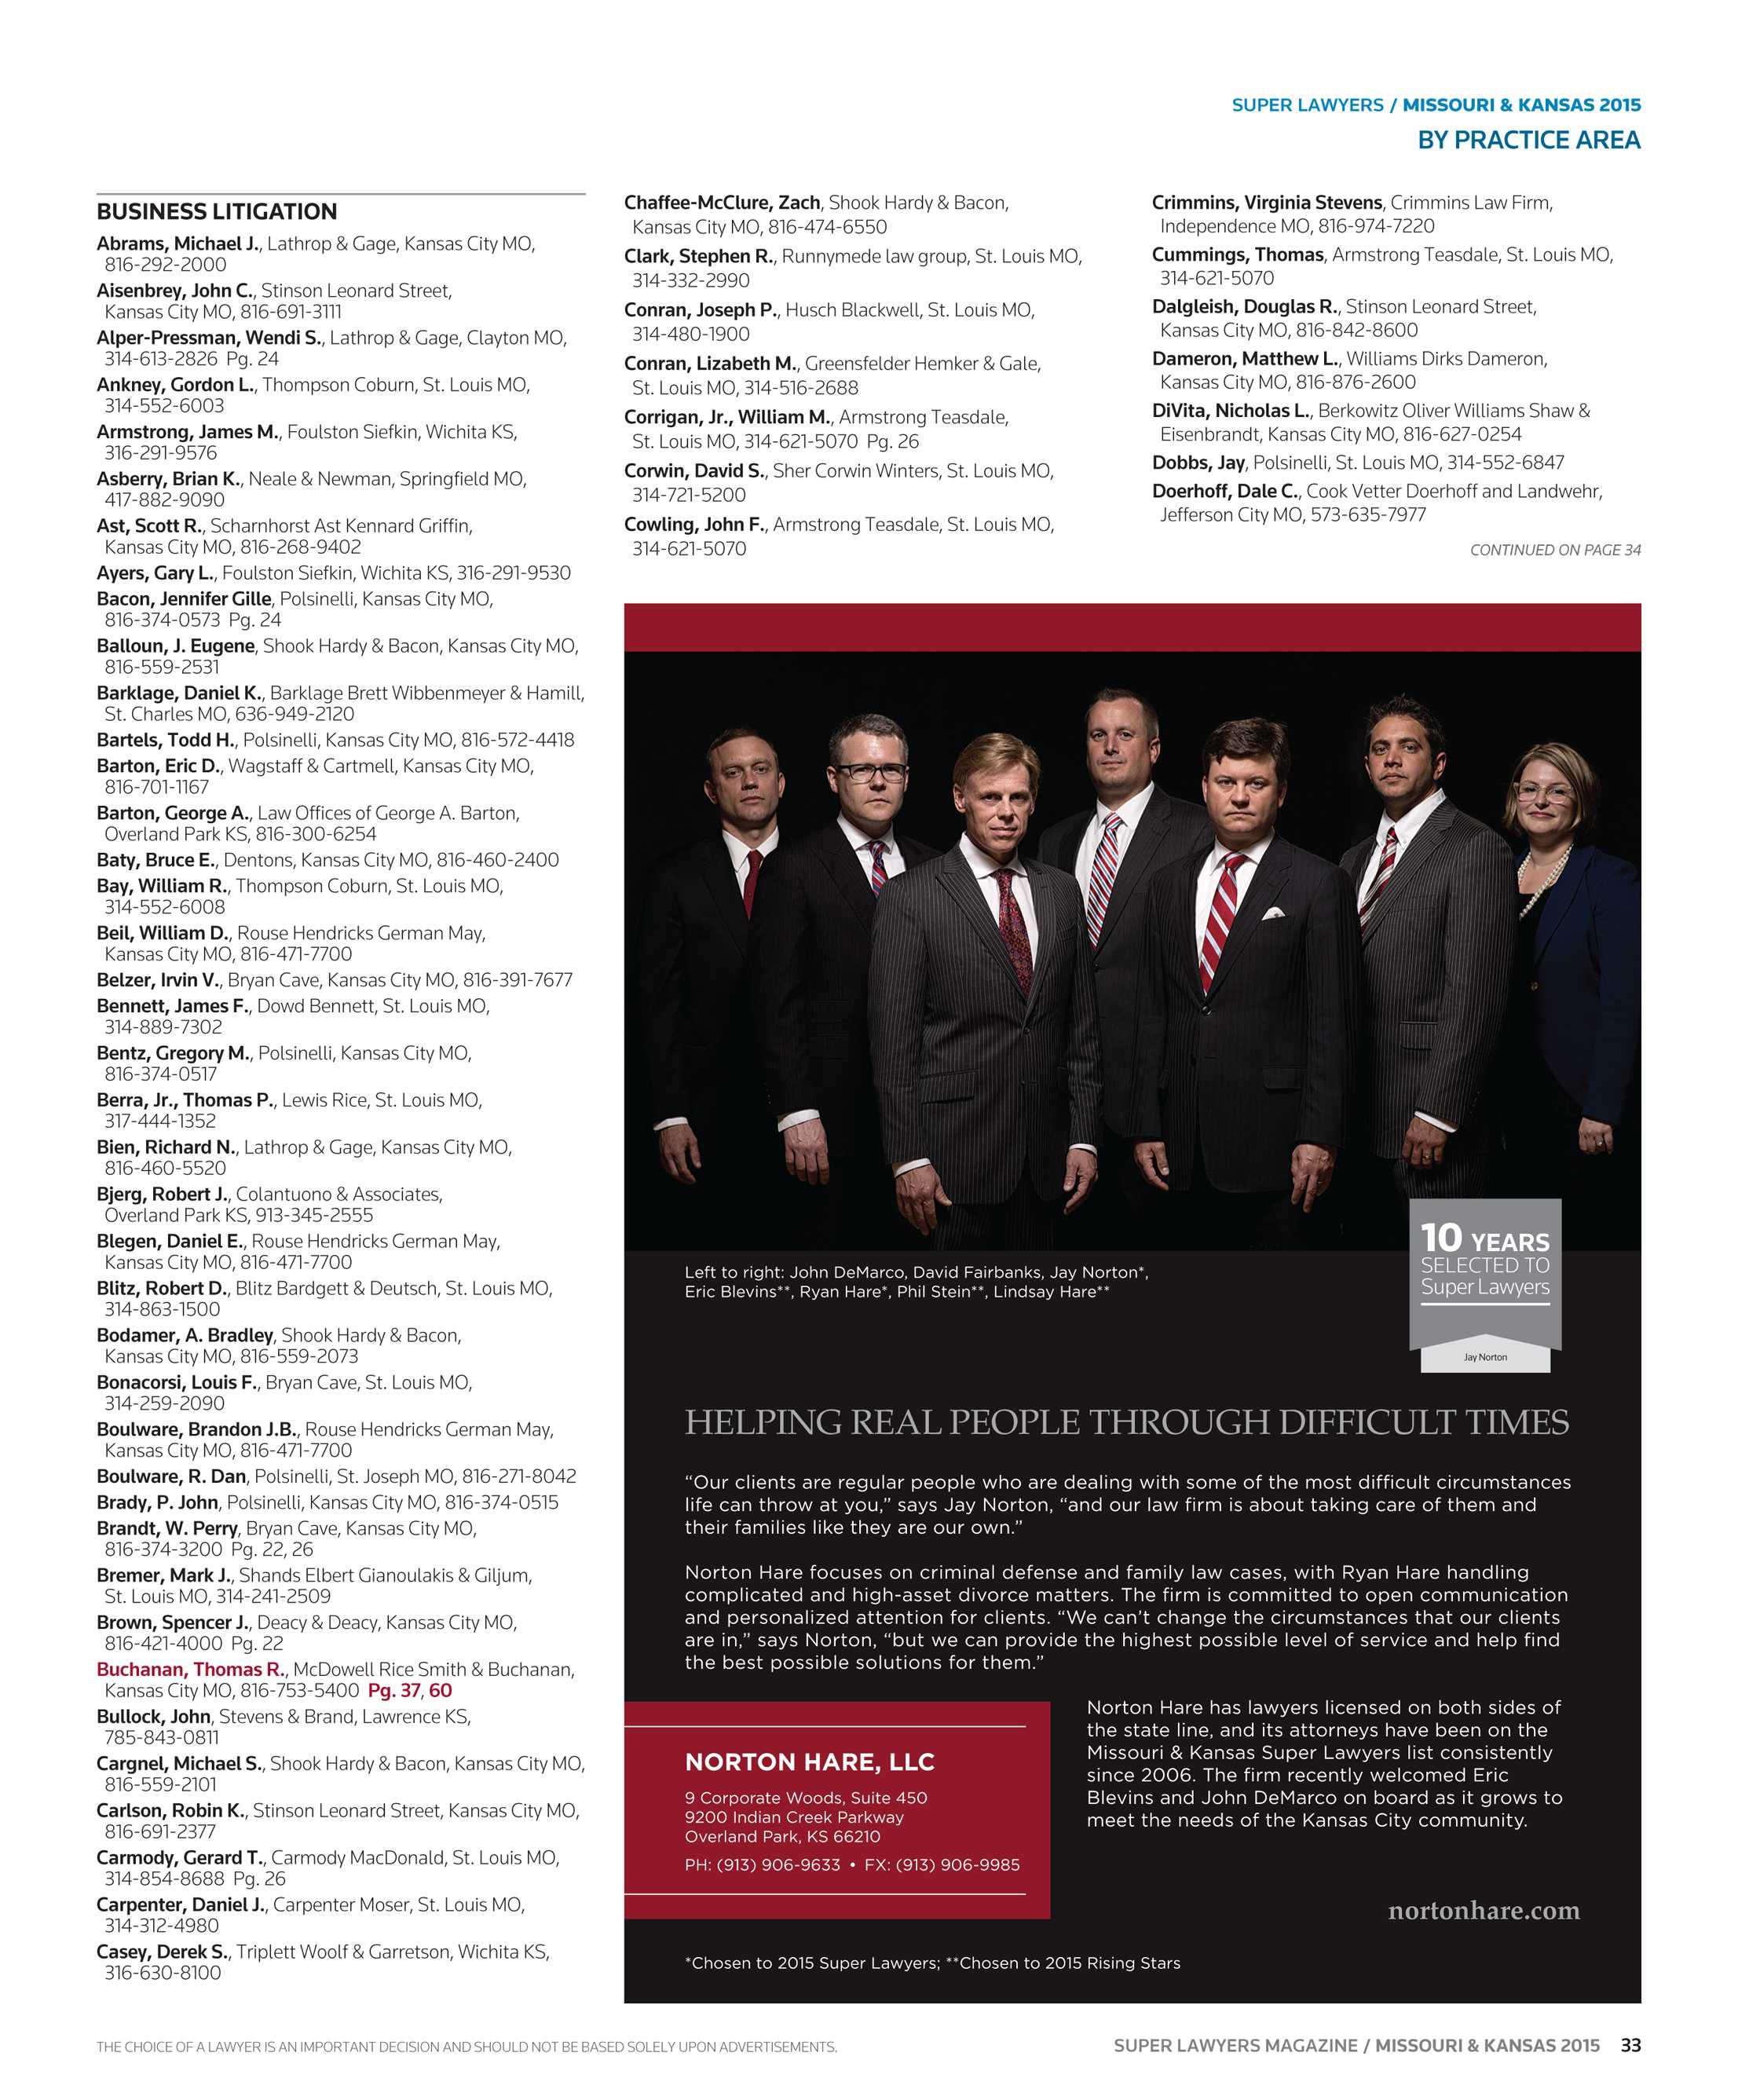 Super Lawyers - Missouri and Kansas 2015 - page 33